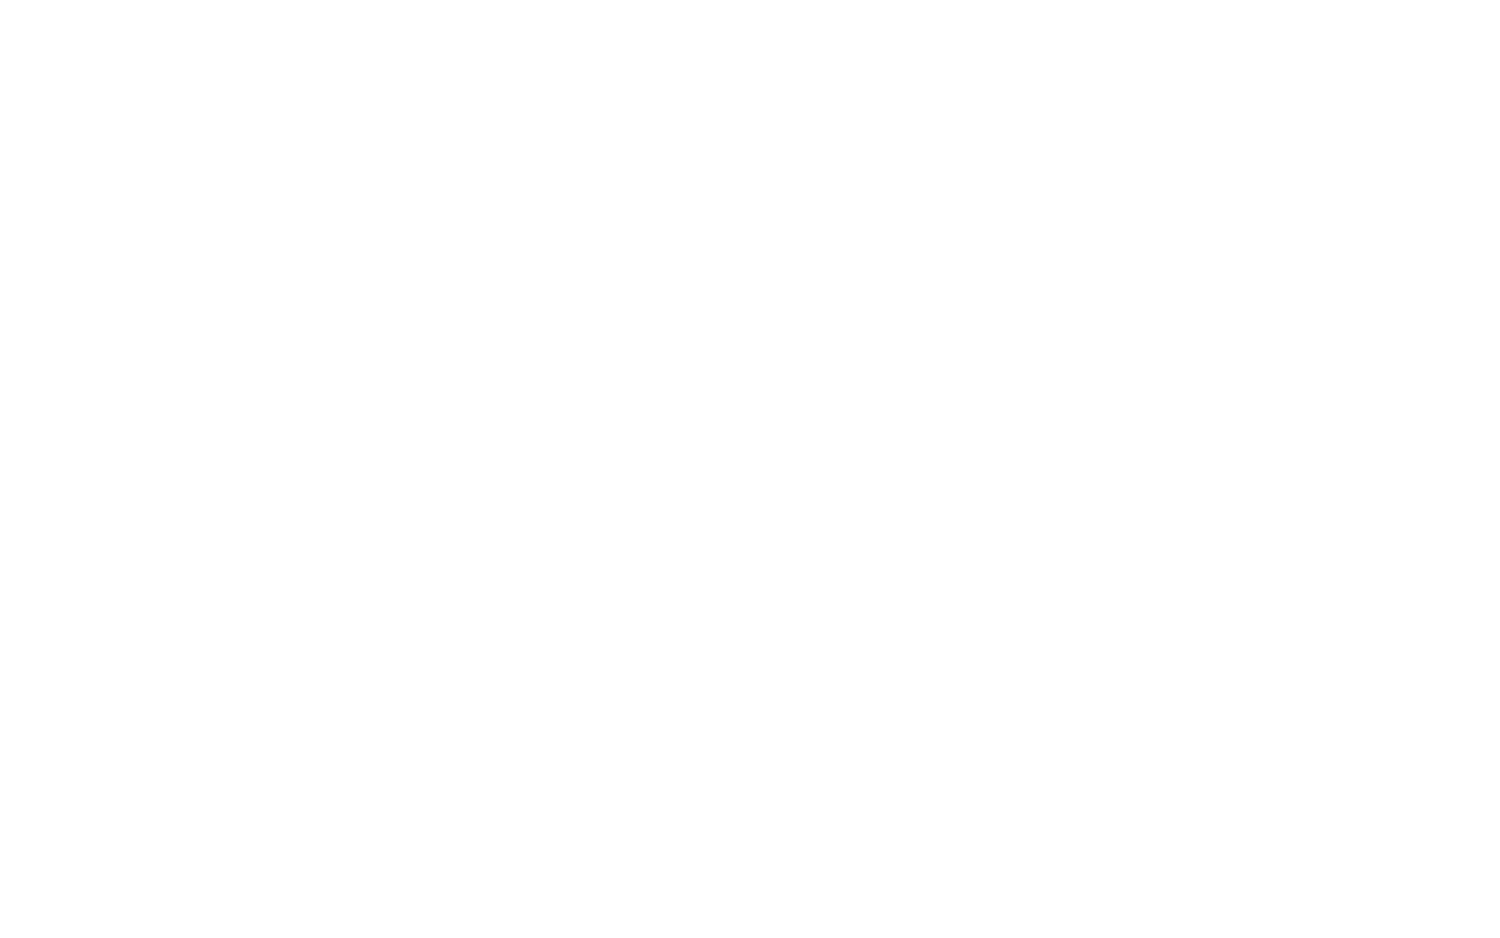 Polipop - Flushable and Biodegradable Sanitary Products